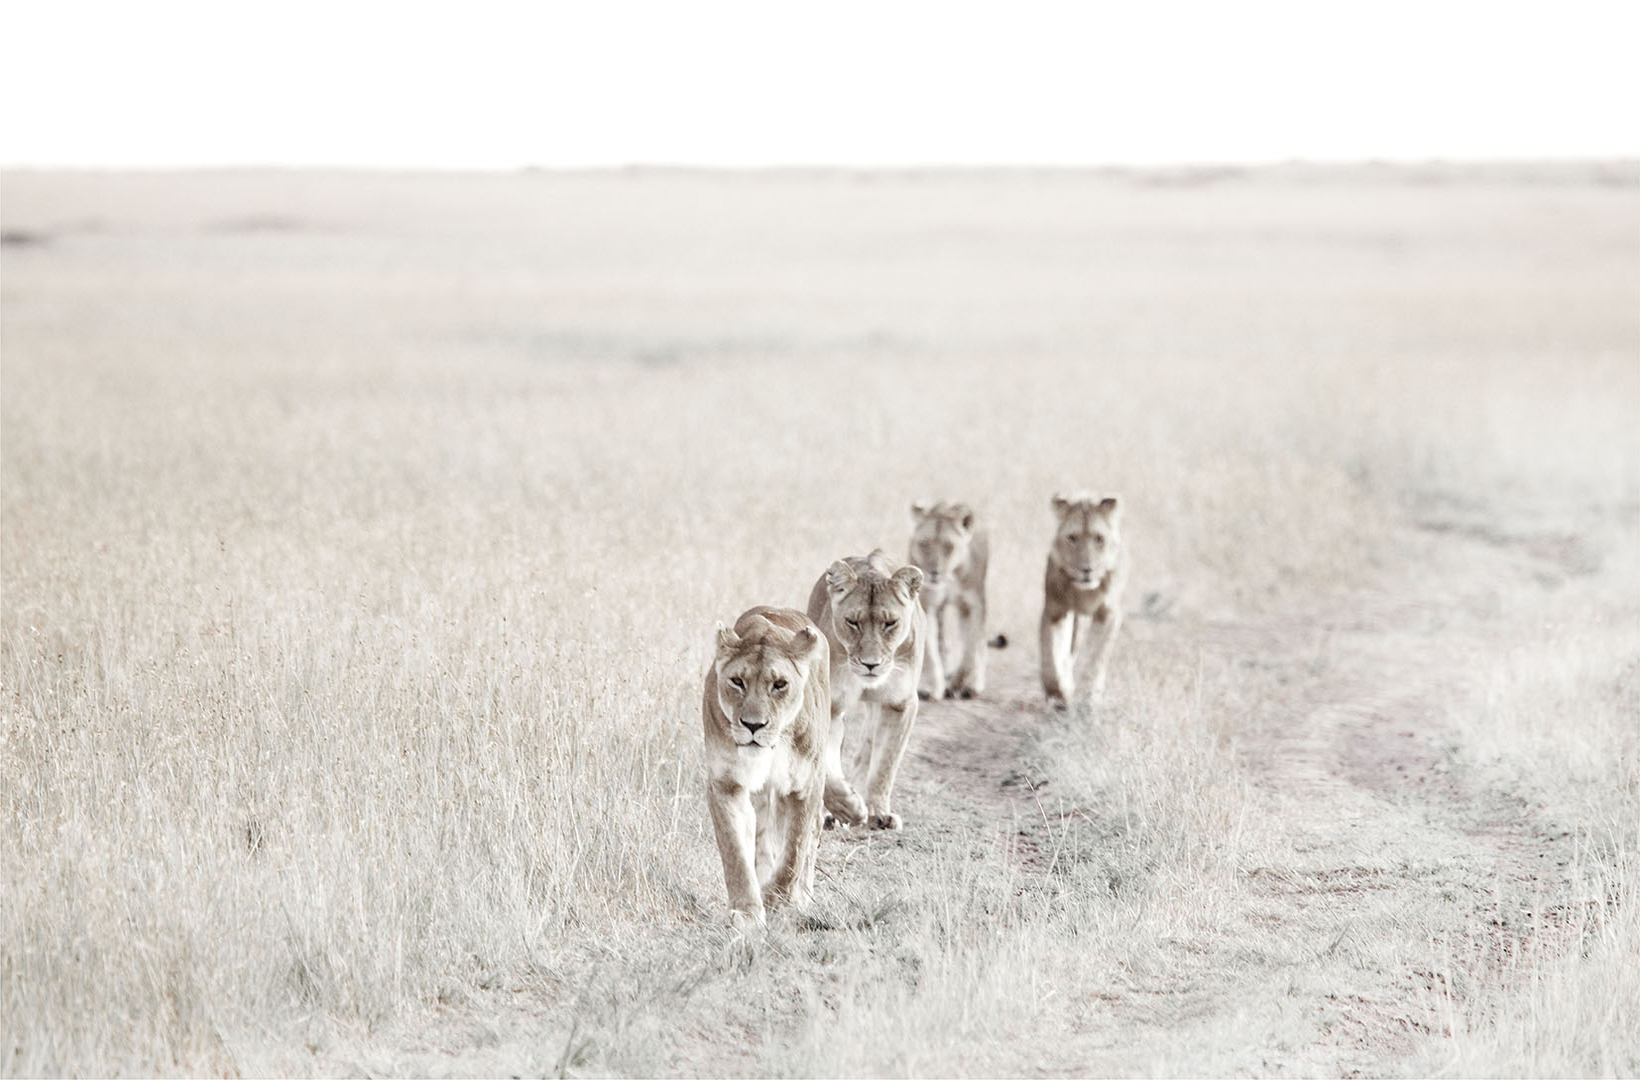 A pride of African lionesses follow each other along a jeep track across the Masai Mara in Kenya, at dawn